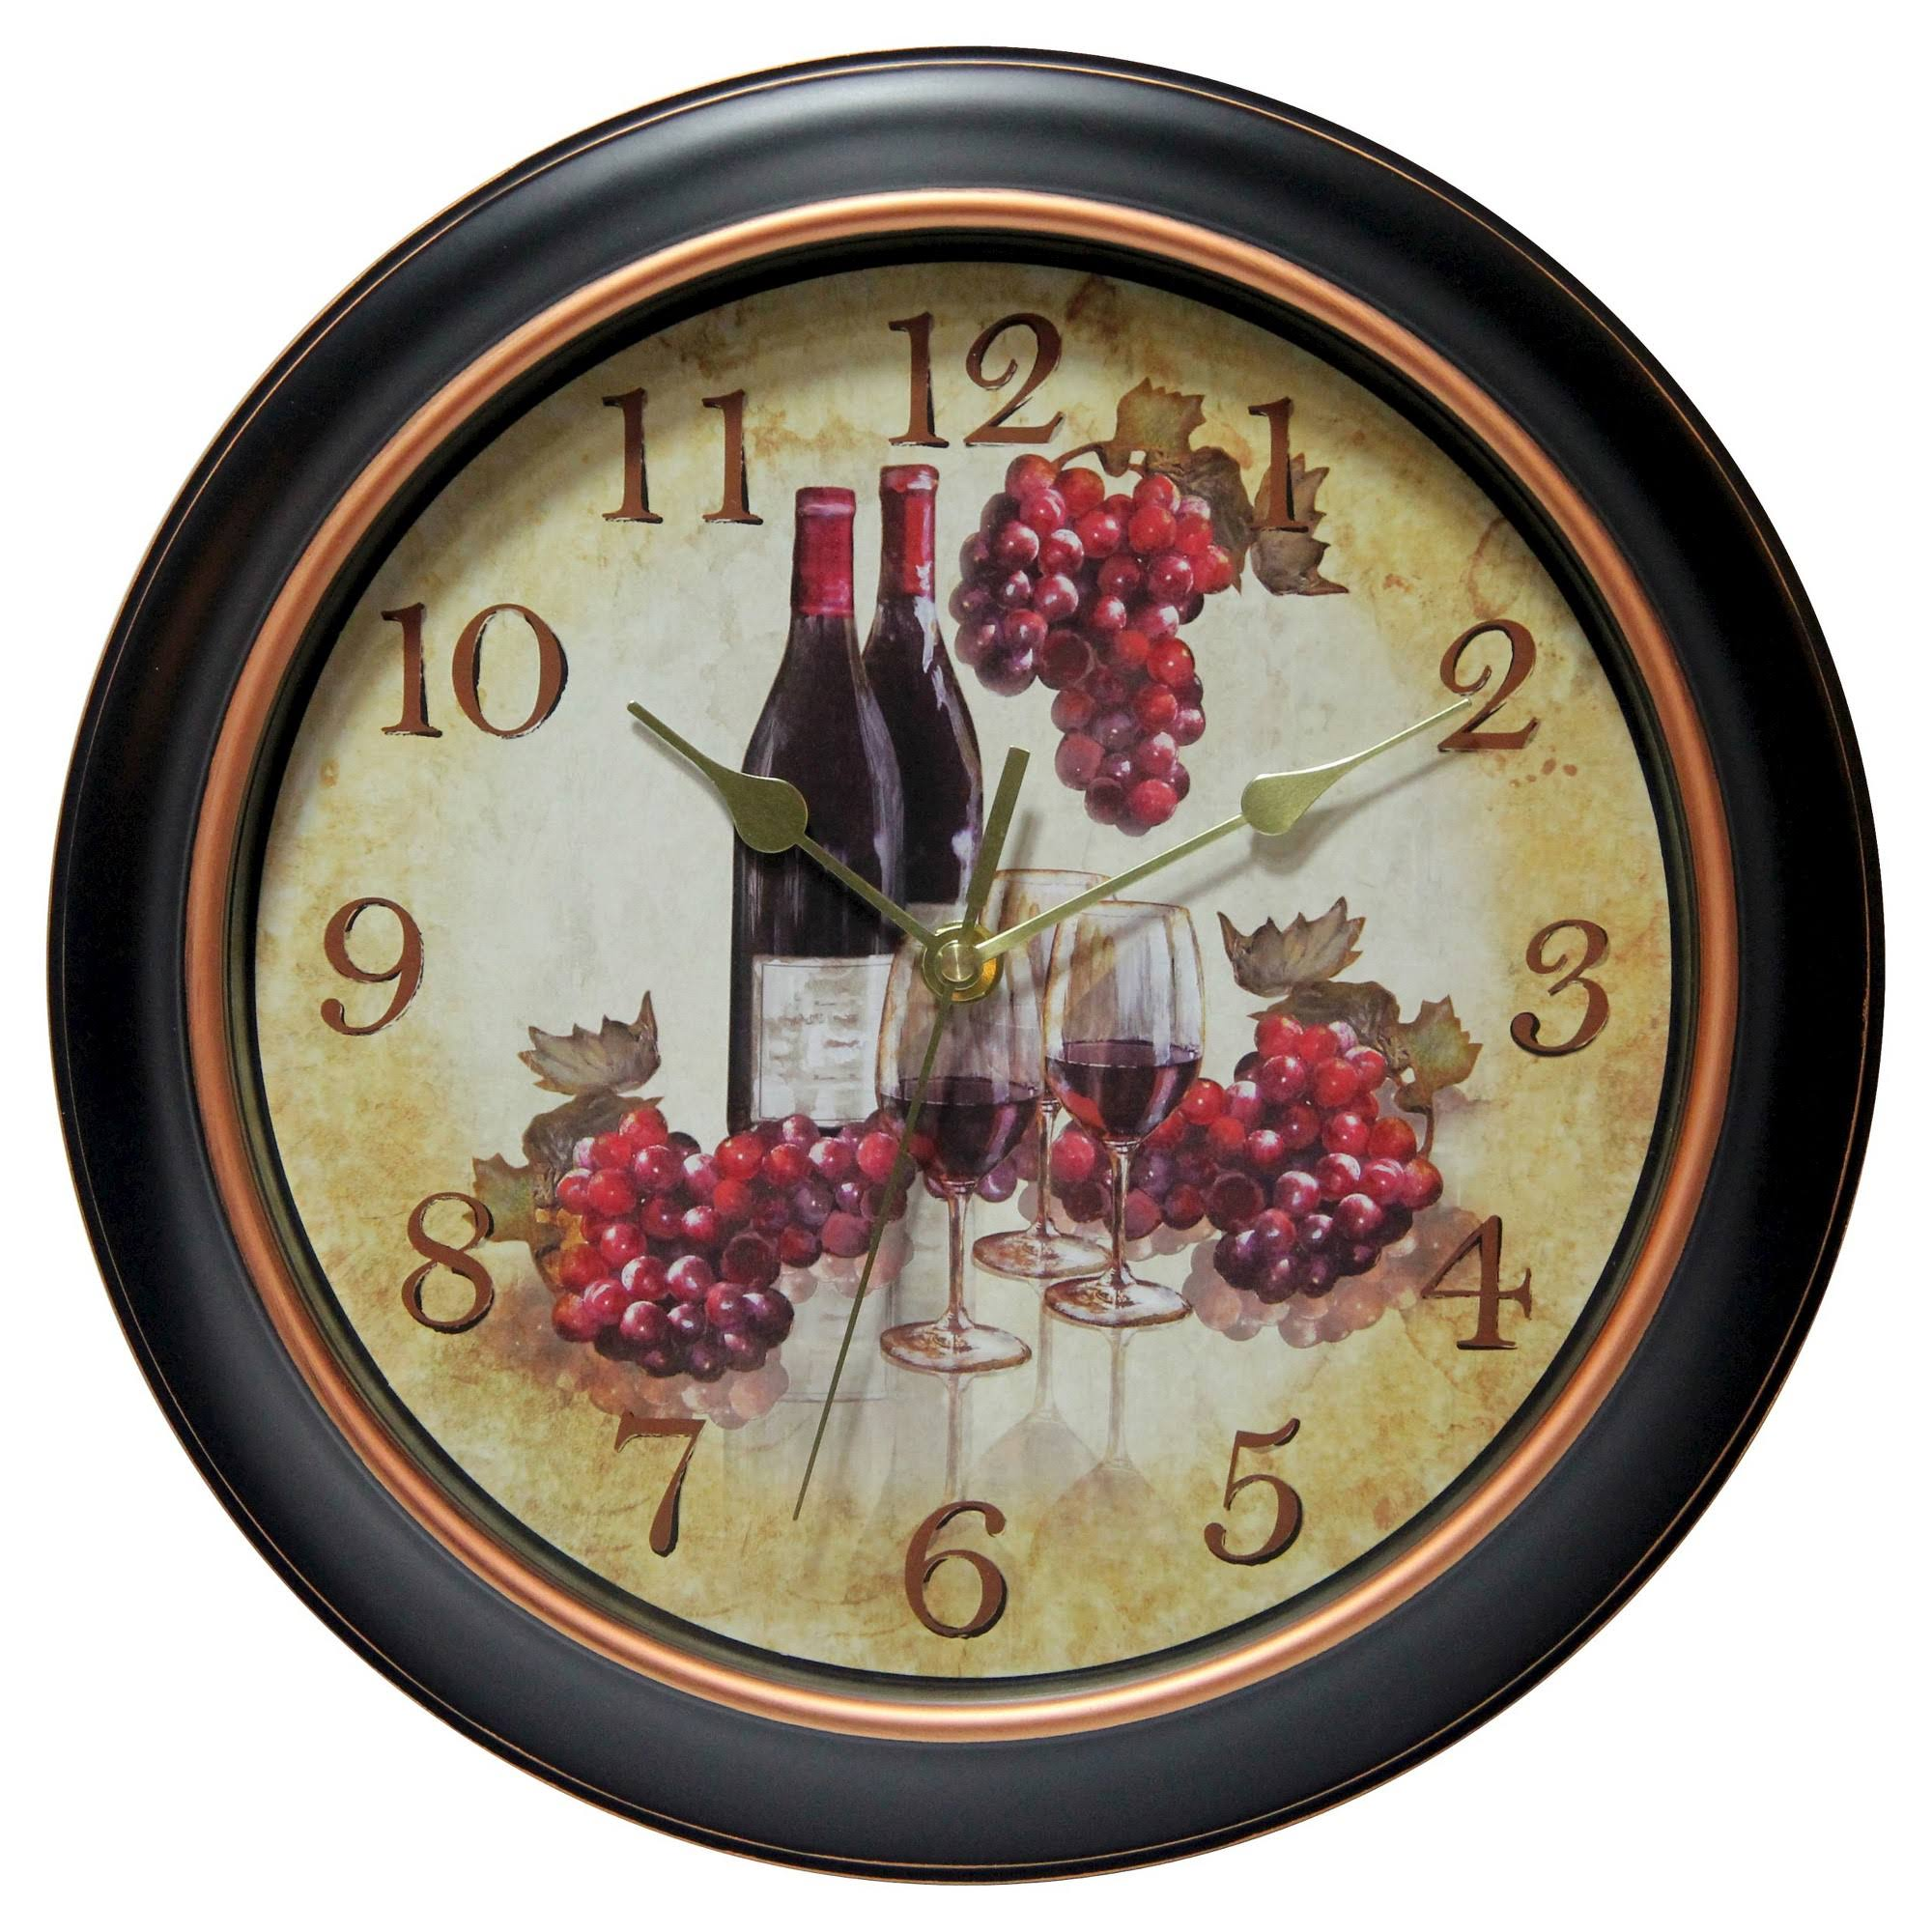 Infinity Instruments Valencia Wall Clock - 30cm, Silent Wine and Grapes